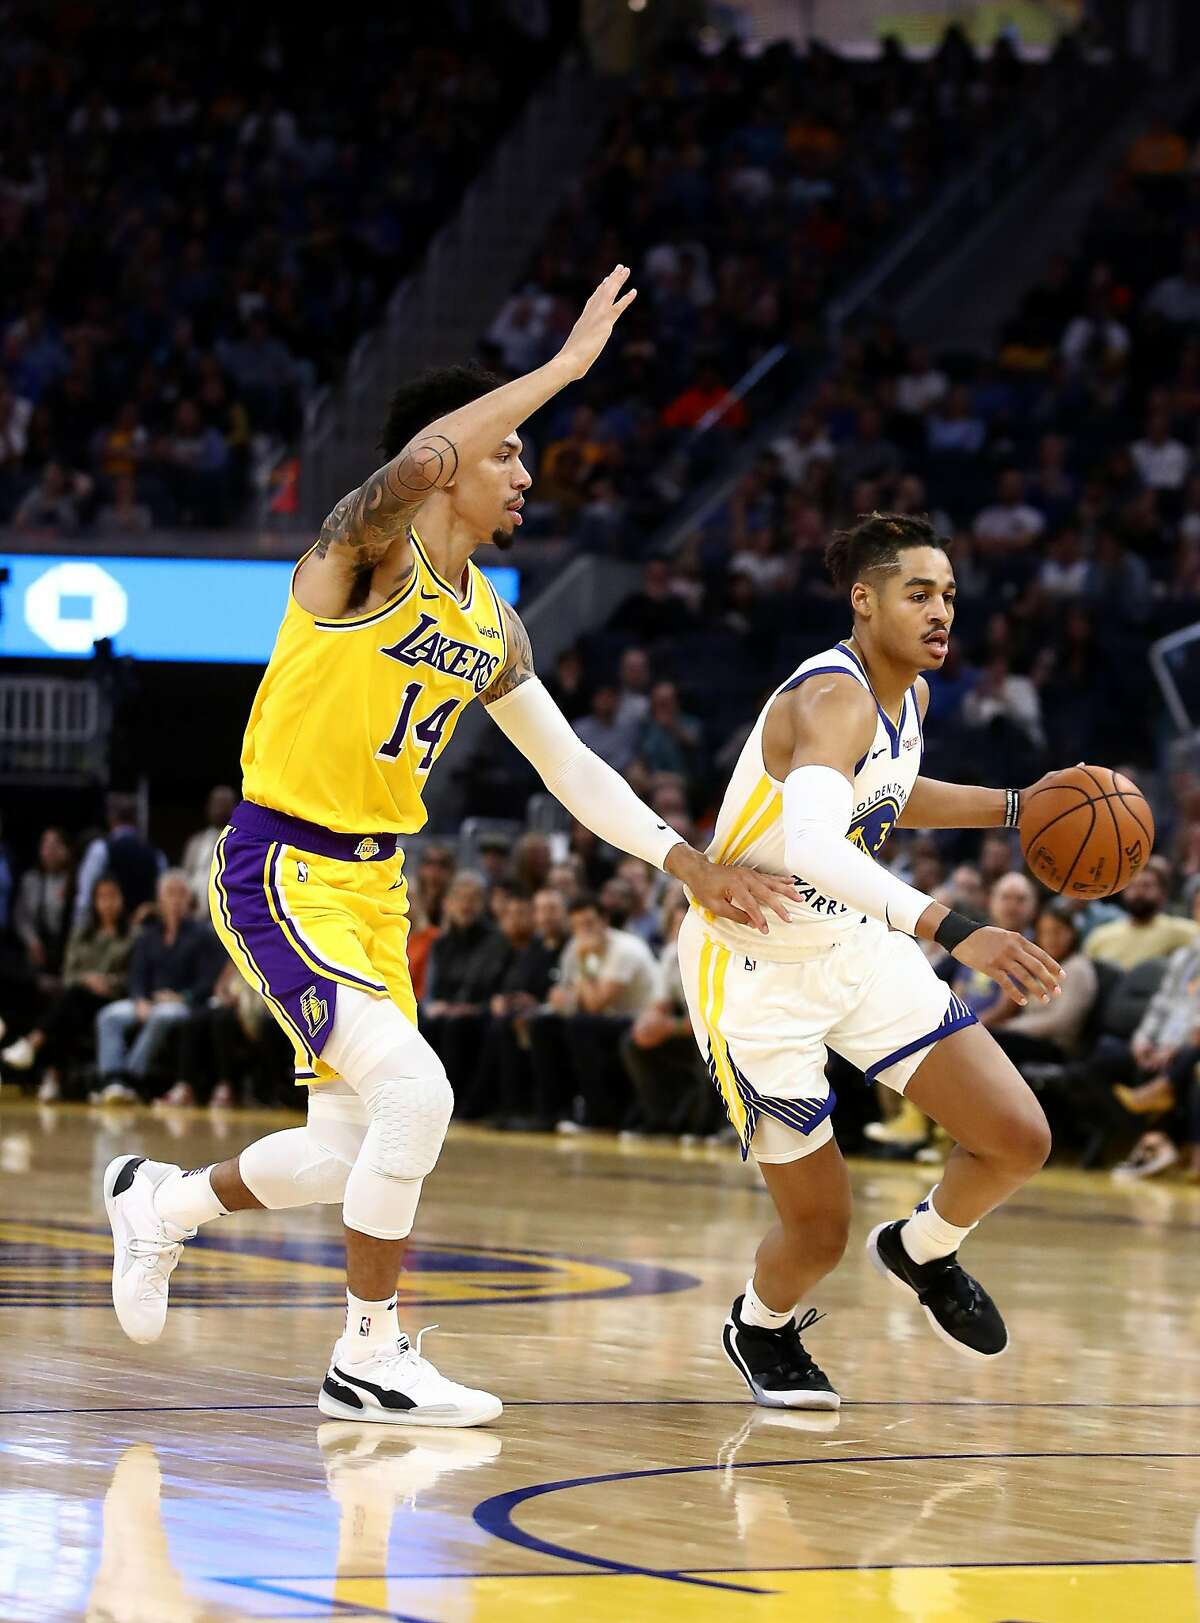 Jordan Poole (3) of the Golden State Warriors dribbles past Danny Green (14) of the Los Angeles Lakers at Chase Center on October 05, 2019 in San Francisco, California.